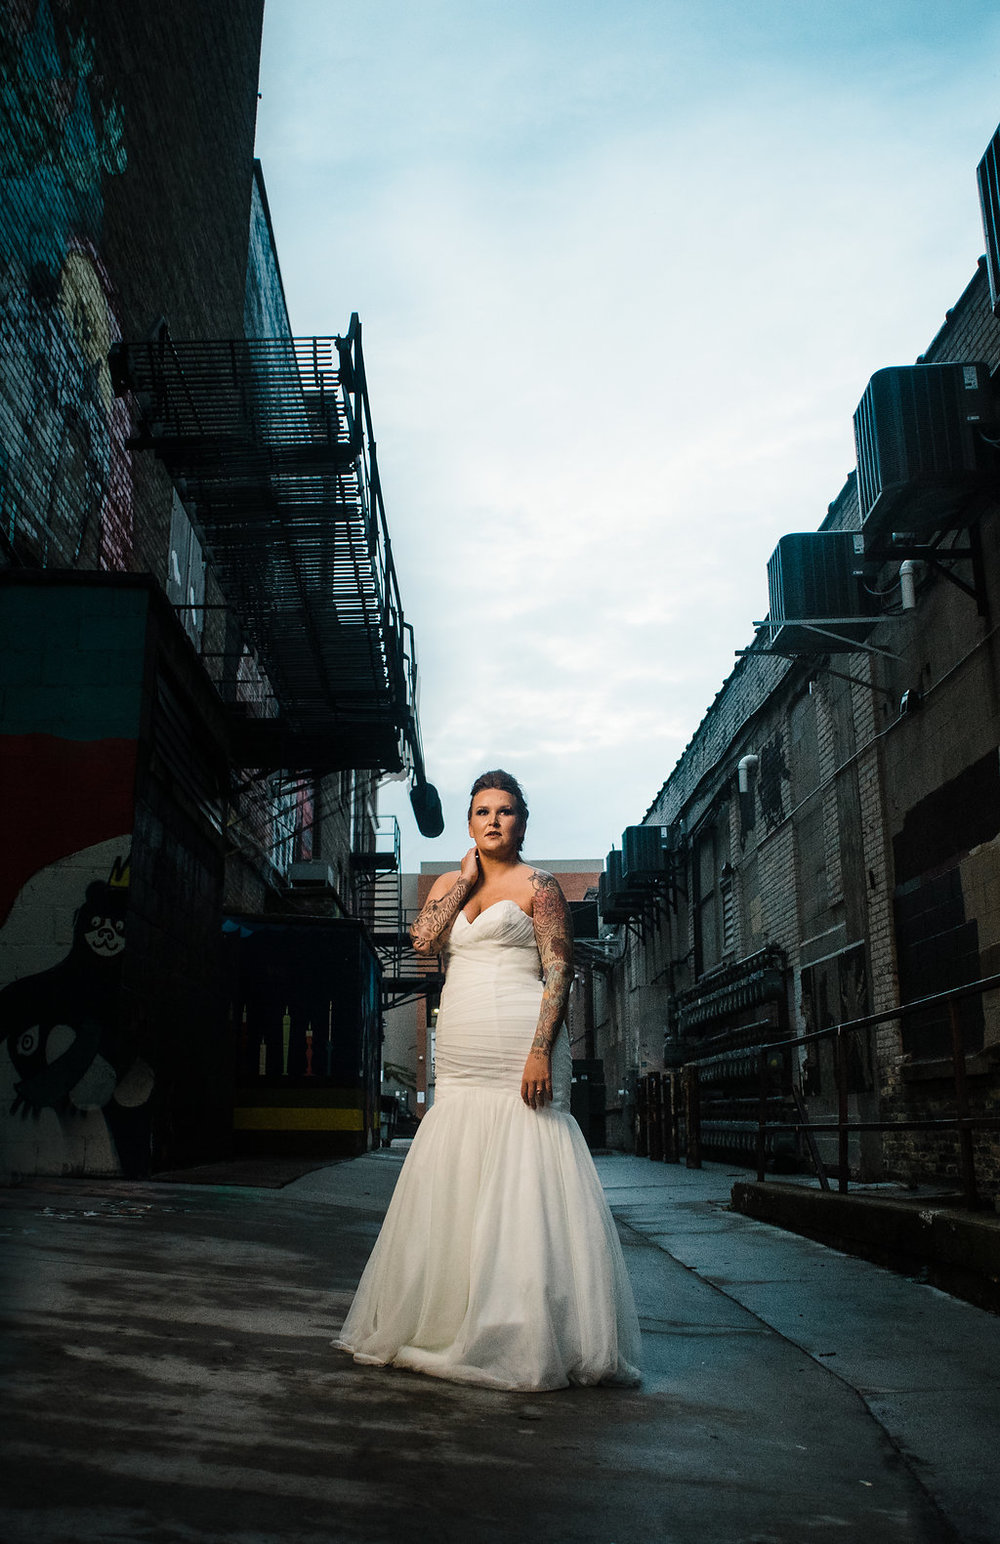 Milwaukee-Wisconsin-Wedding-Photographer-Black-Cat-Alley-Styled-Bridal-Shoot-77.jpg